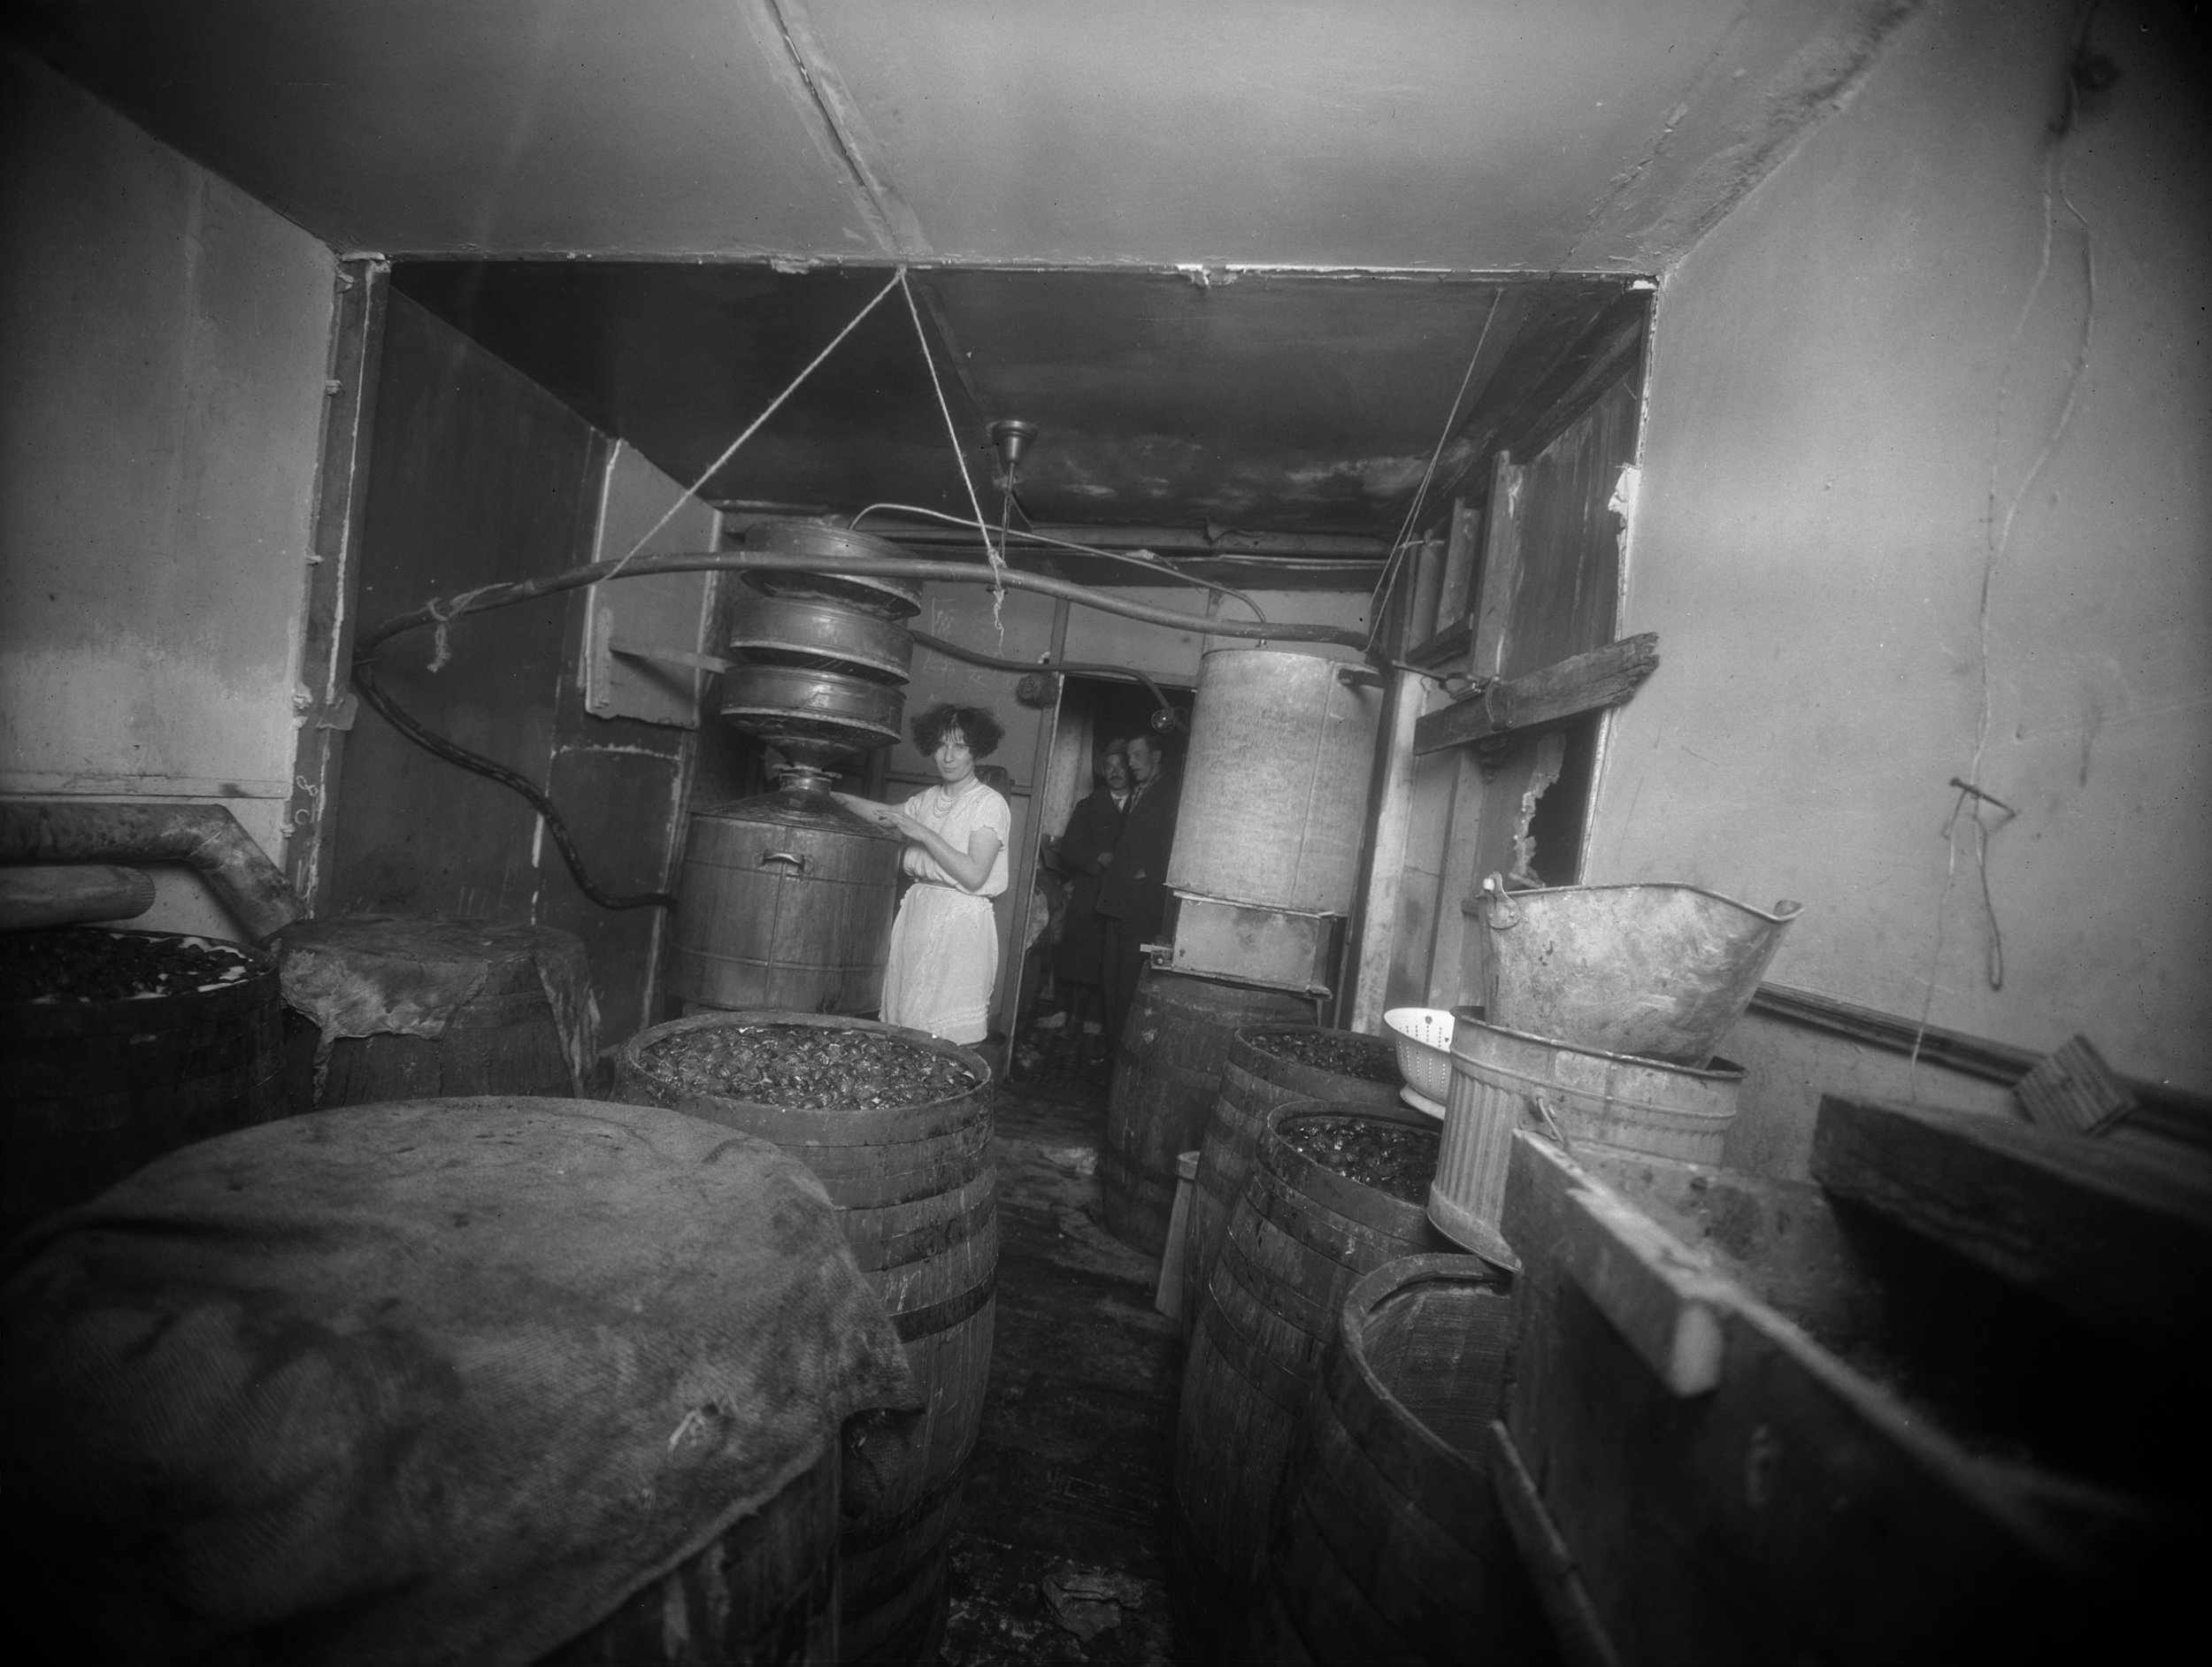 A still at 1366 East 58th St., Brooklyn, December 17, 1926. One of the many small bootlegging operations raided by the police in the late 1920s. NYPD Collection, NYC Municipal Archives.